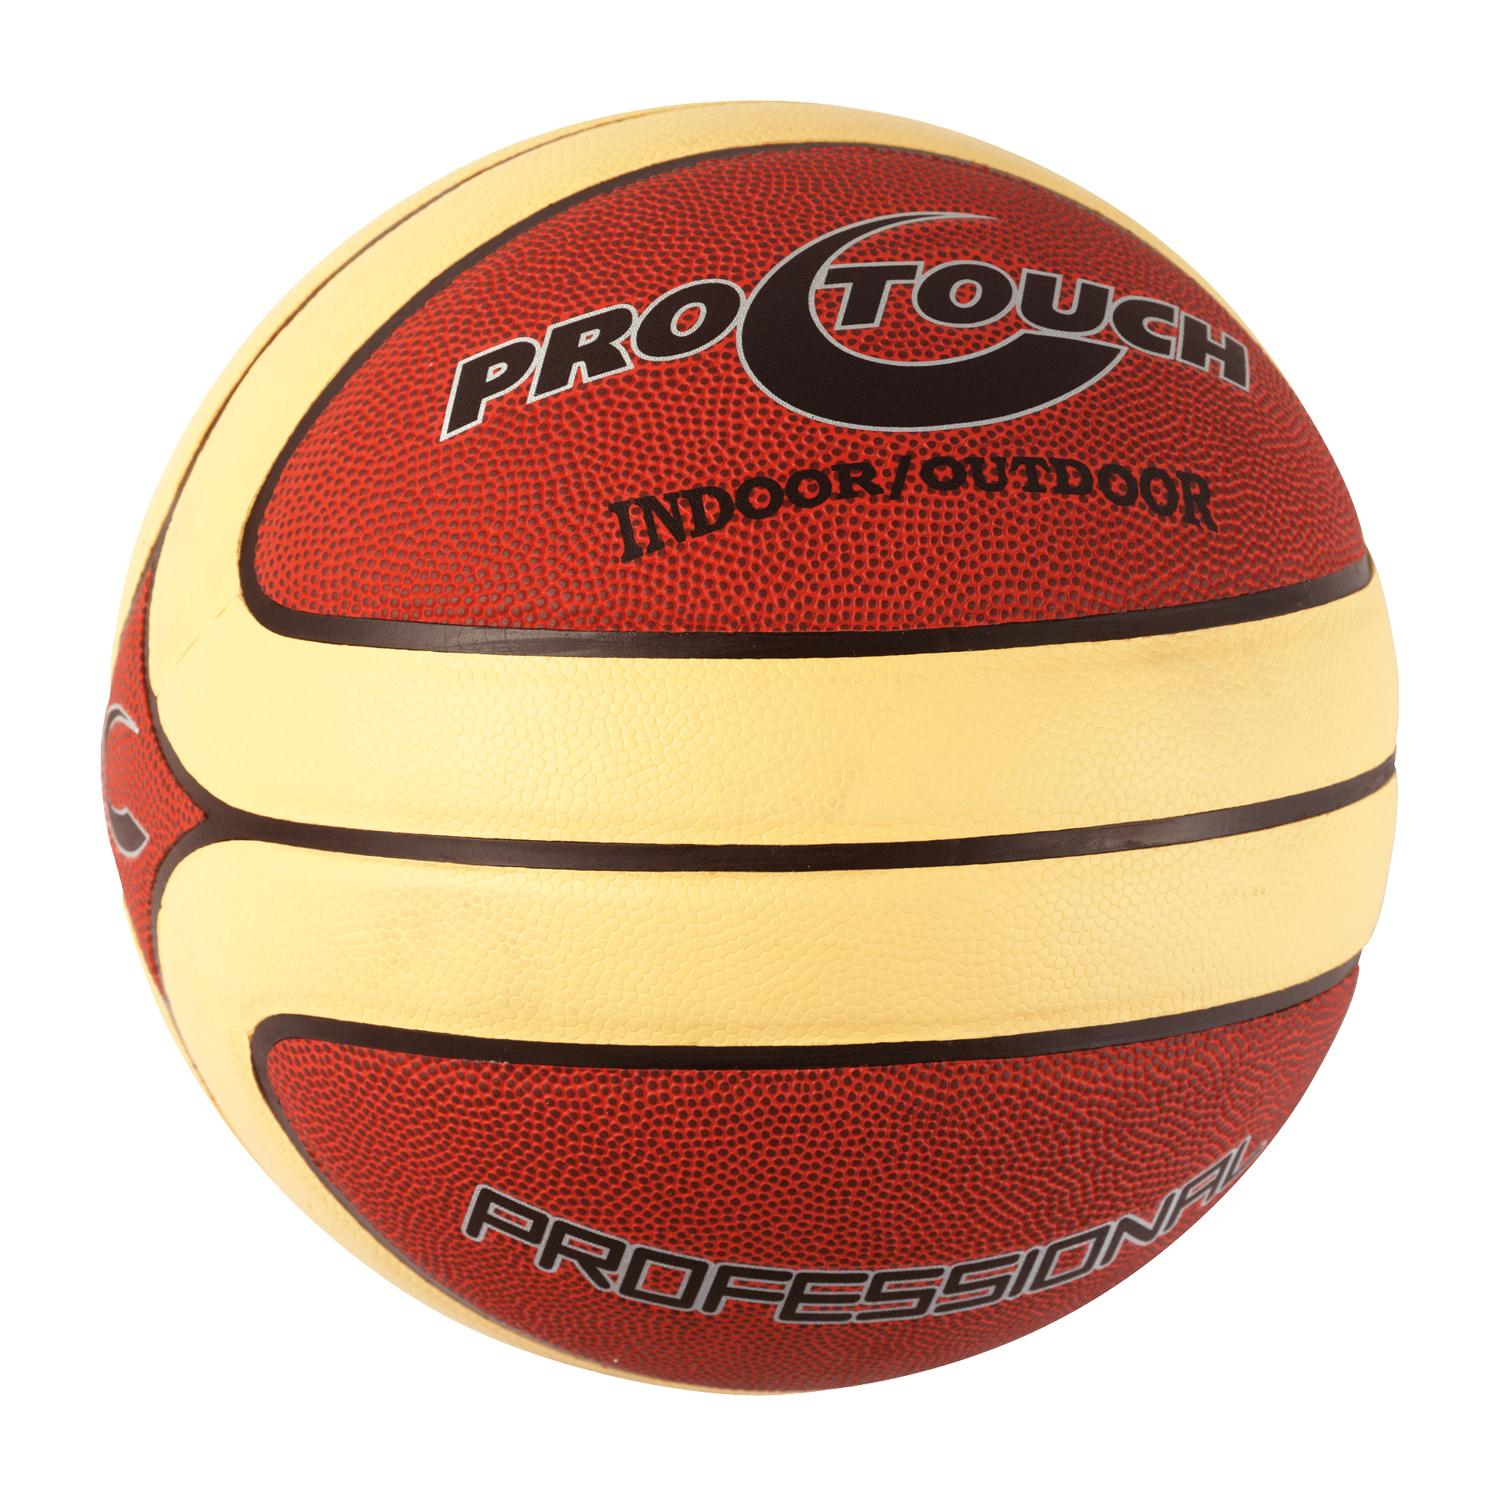 Image of   Pro Touch Professional basketball